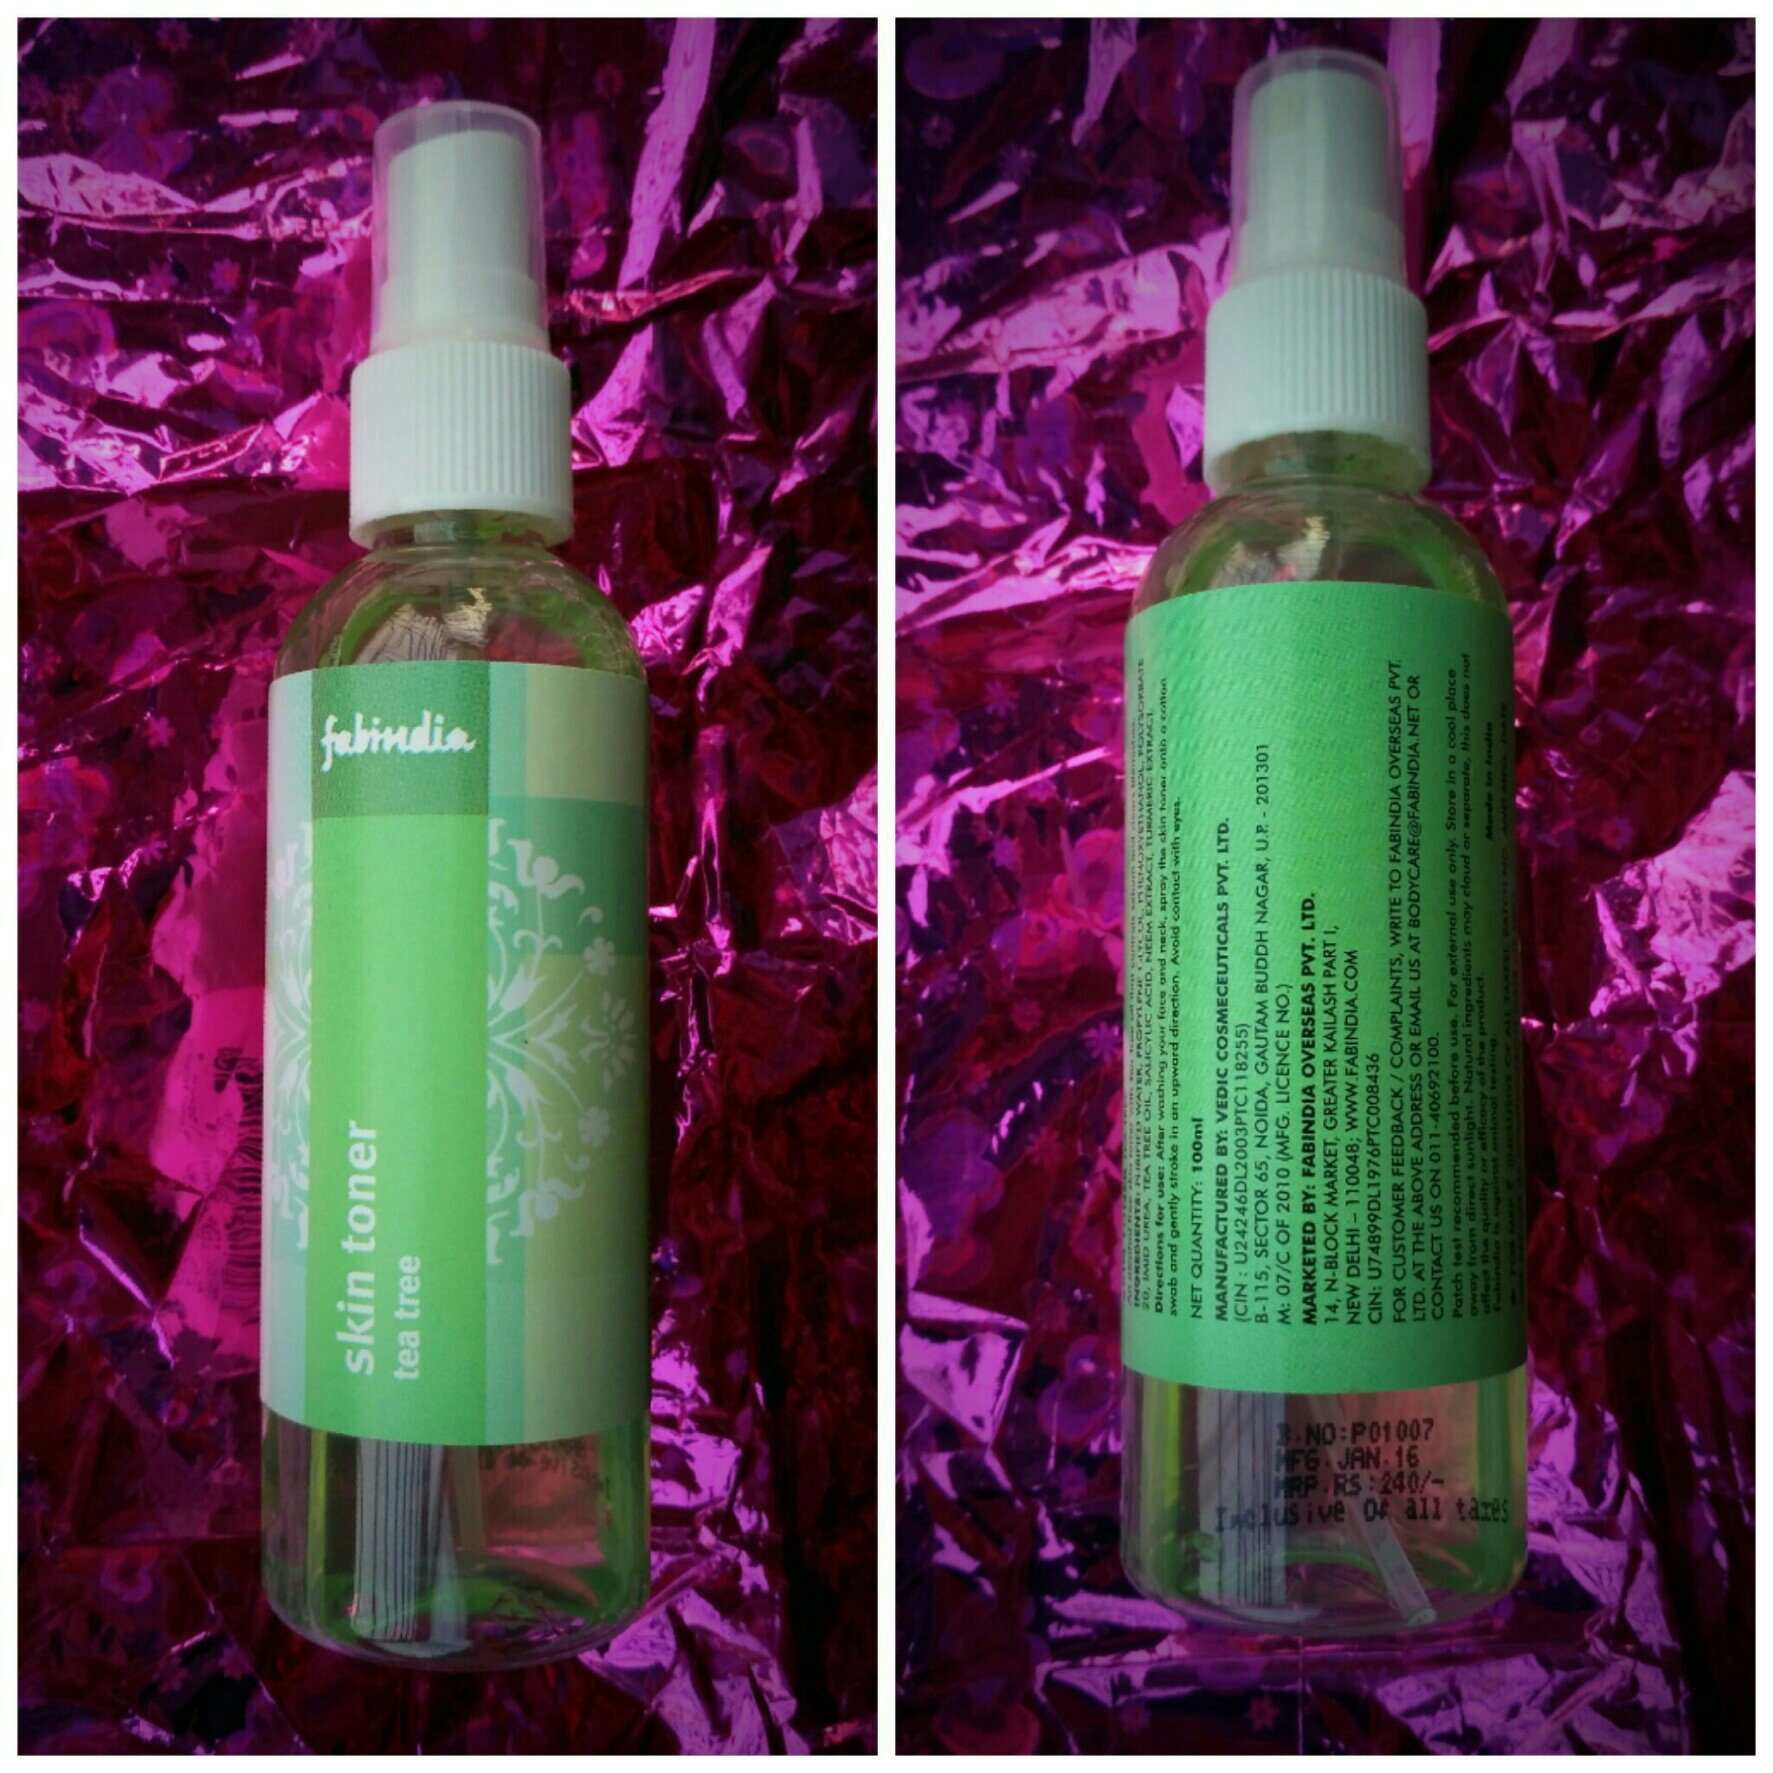 Fabindia Skin Toner Tea Tree